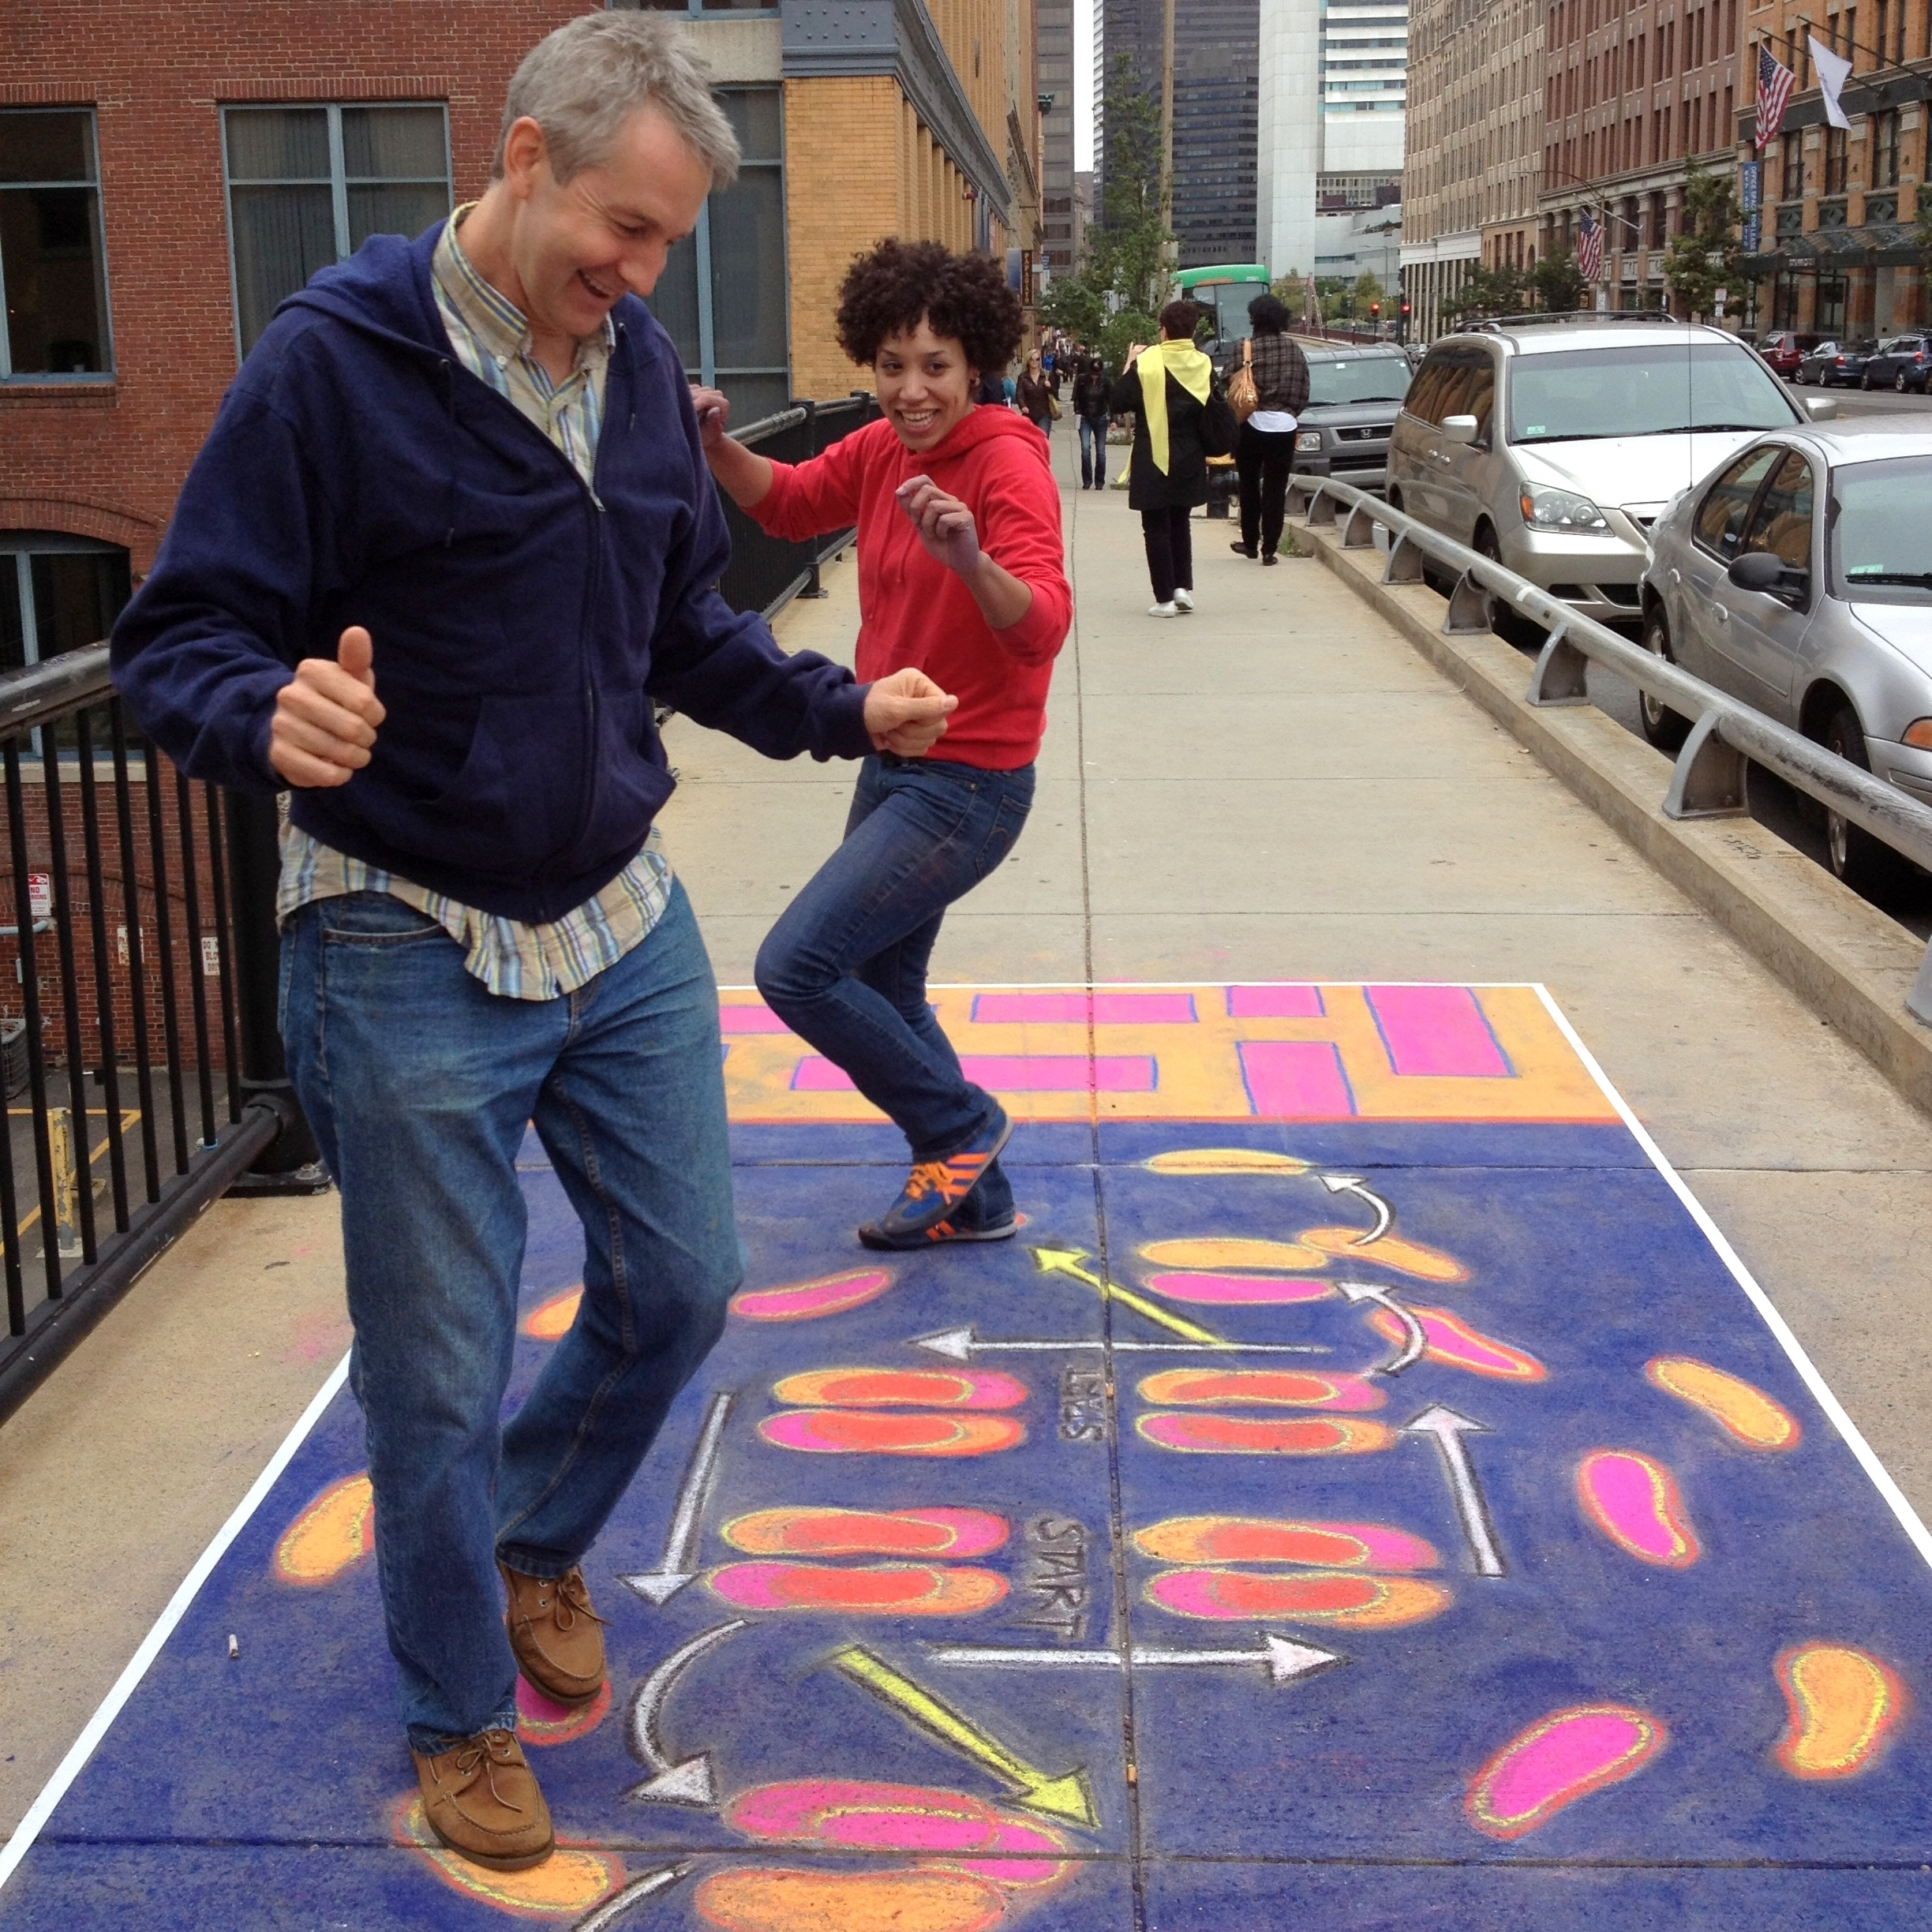 Hamilton during   Dance Spot  , 2012. An interactive public art experience that transformed the sidewalks of Fort Point, Boston into dance floors. Photo:Jessie Schanzle